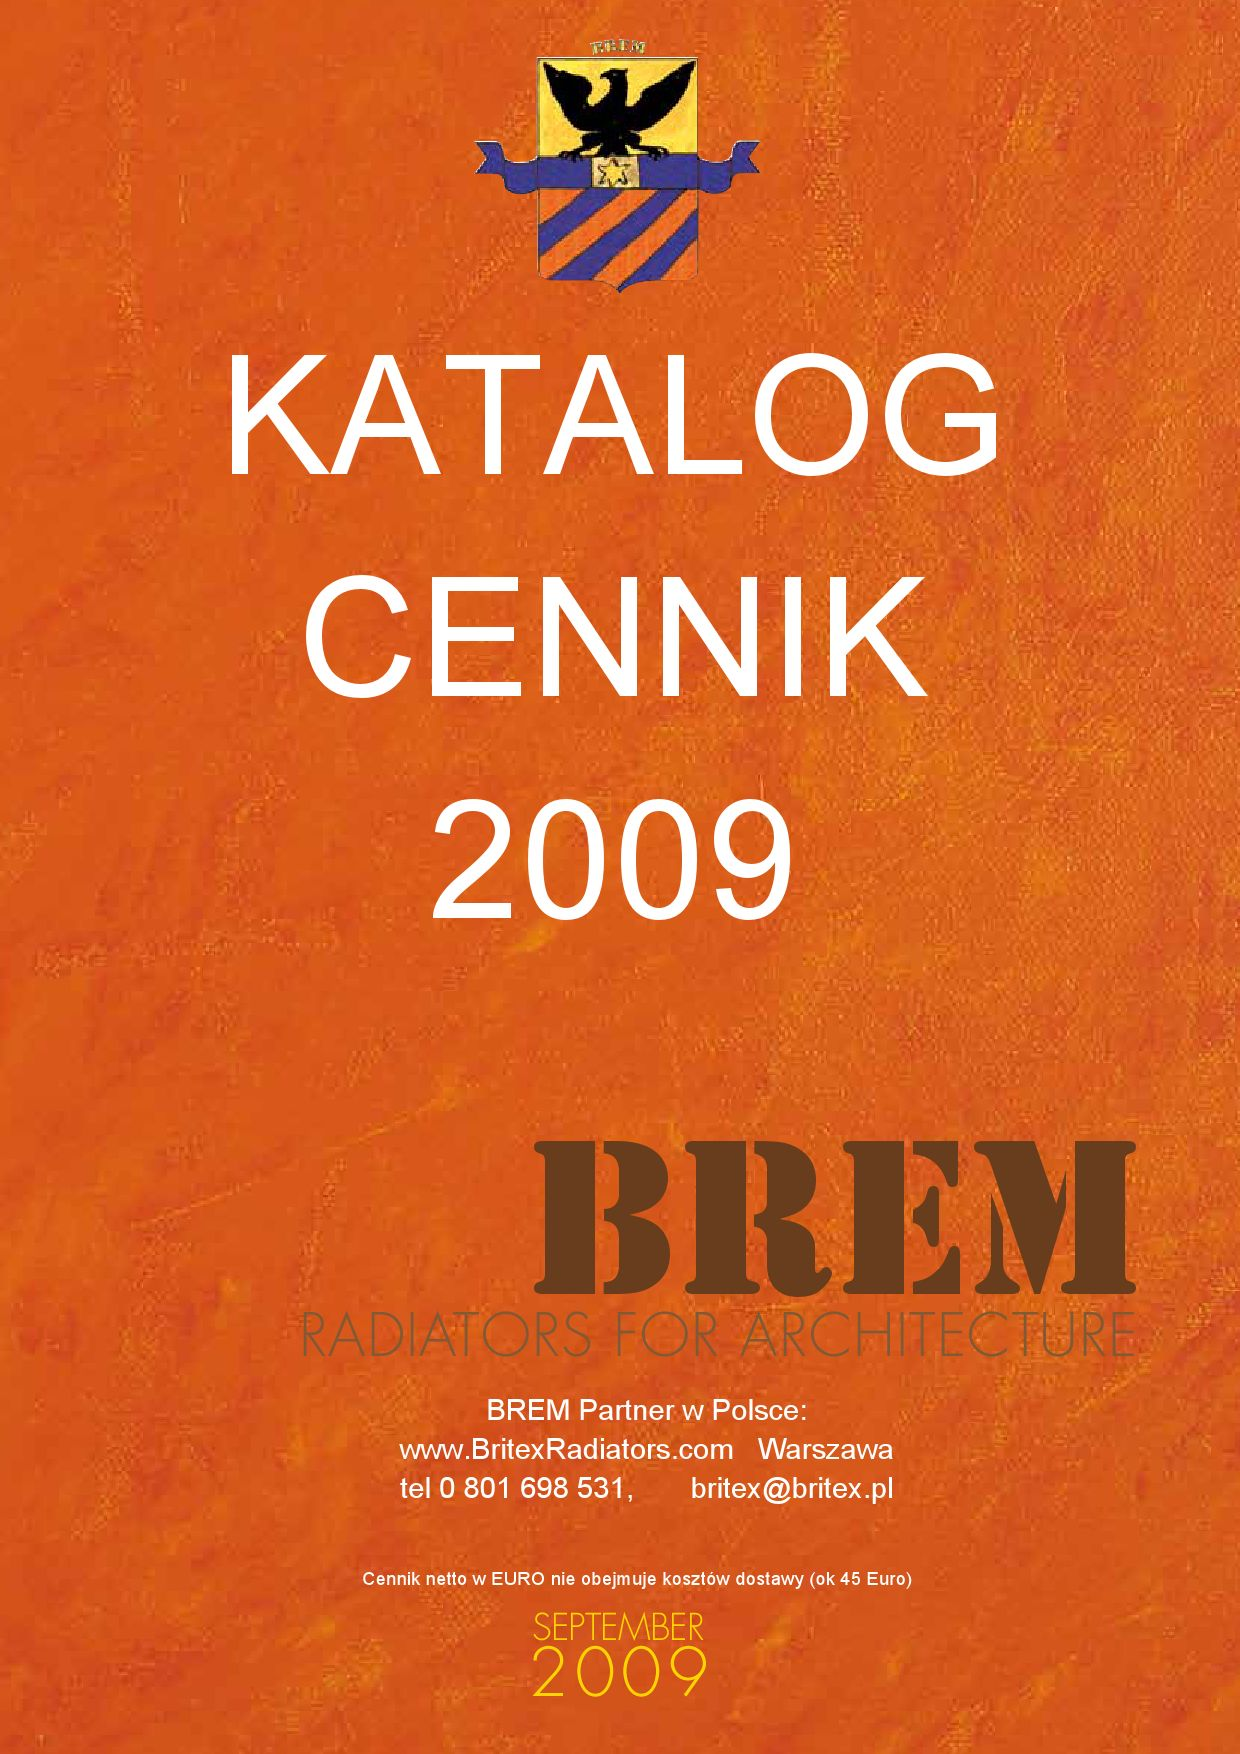 Confini dell anima page 230 - Brem Katalog I Cennik Catalogue Price List By Britex Bw Wlodzimierz Bielski Issuu